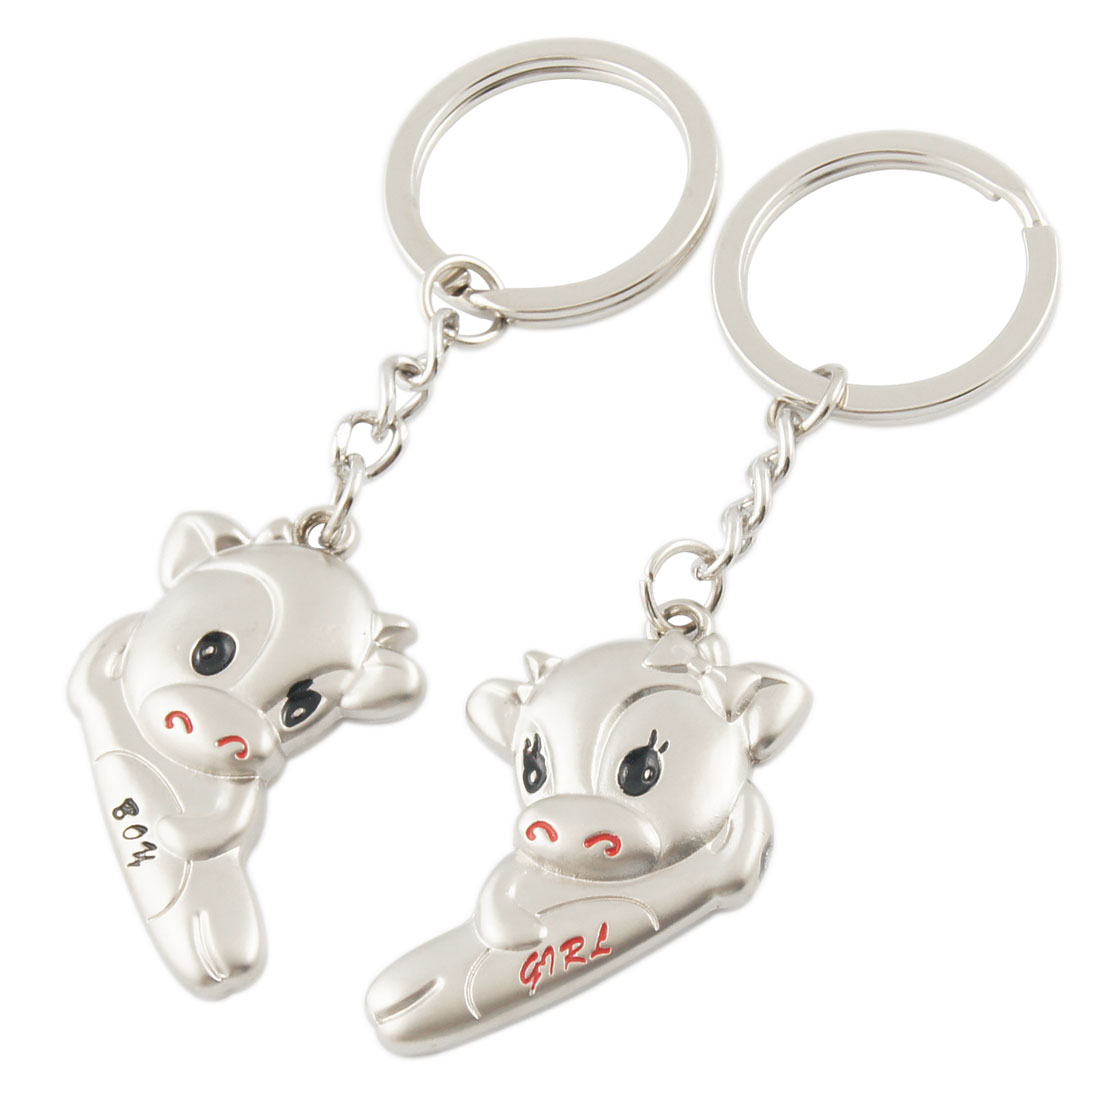 Lovers Couples Magnetic Cartoon Ox Split Ring Keyrings Silver Tone 2 Pcs